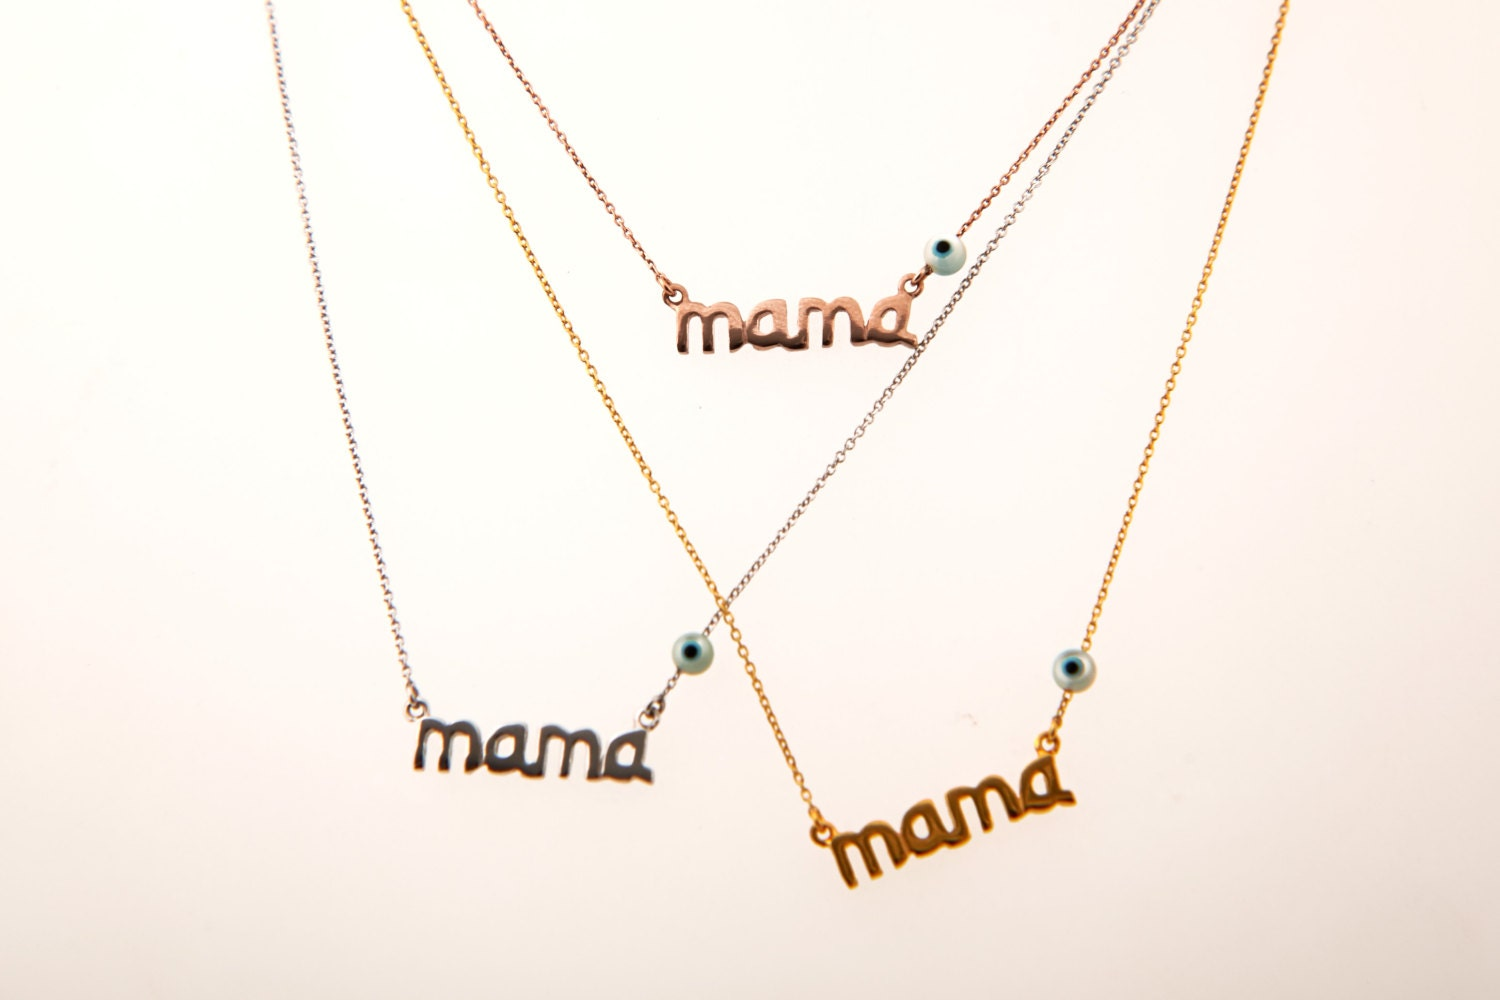 meyer mamanecklace jennifer mama necklace products